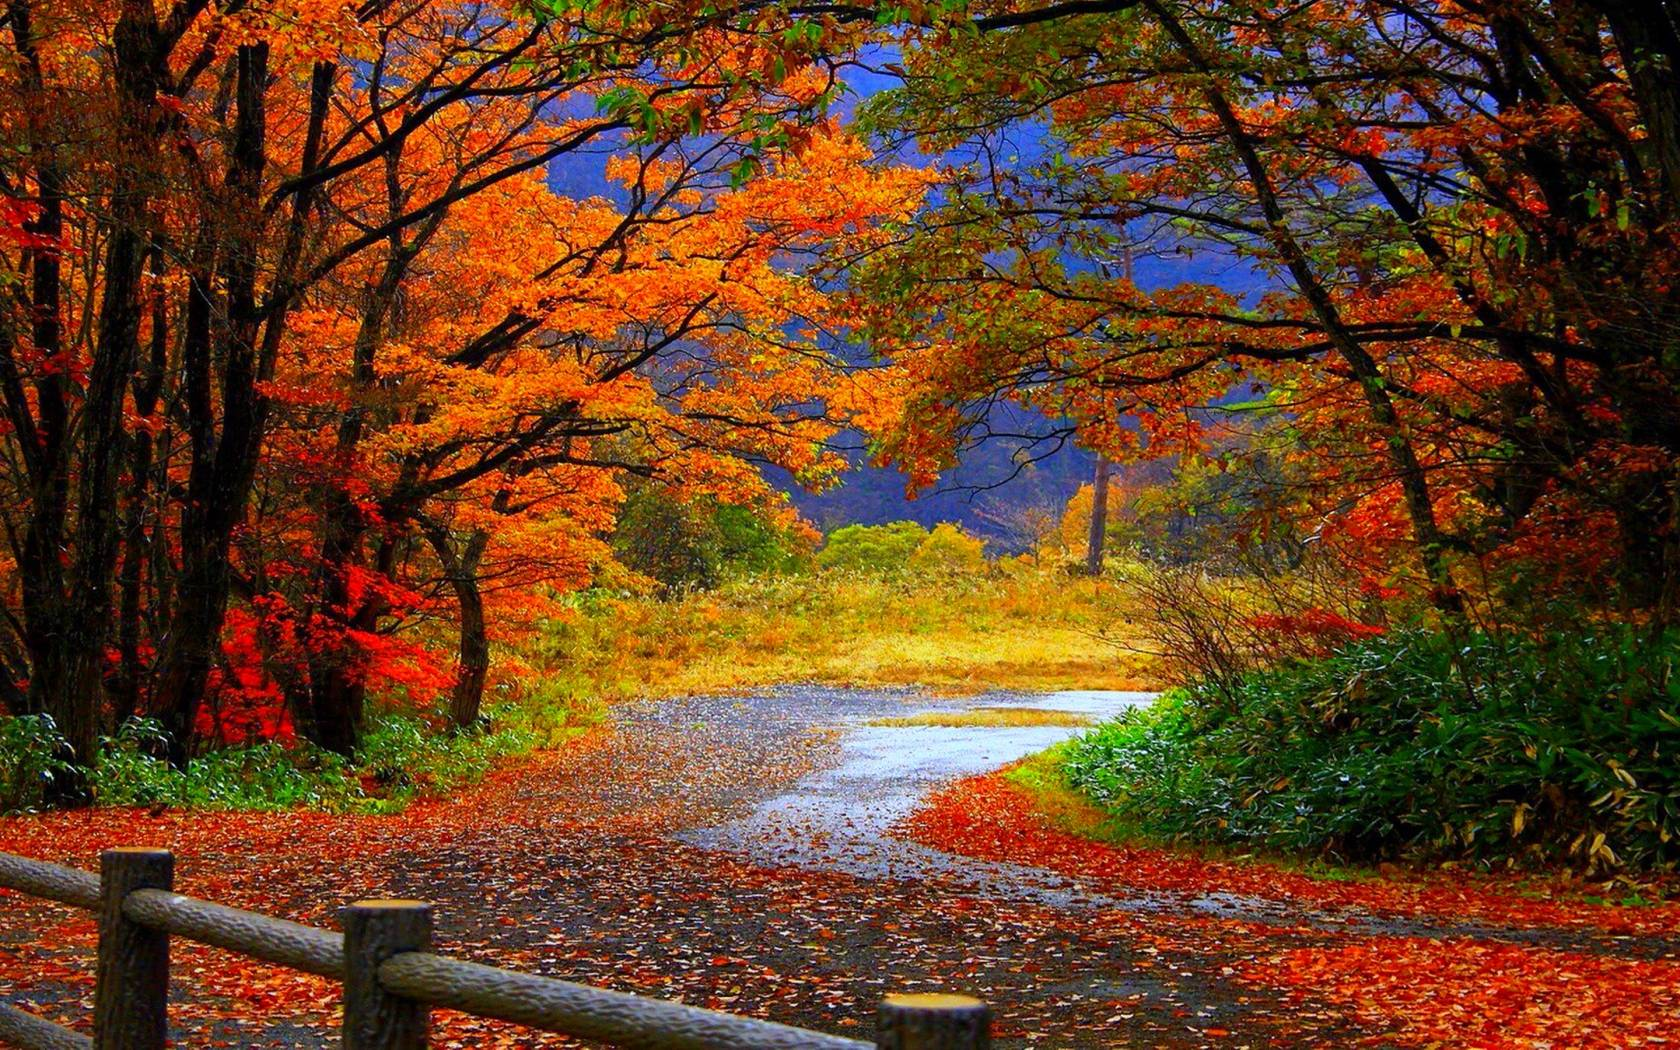 Top 6 Android Autumn Live Wallpapers To Enjoy Falling Leaves